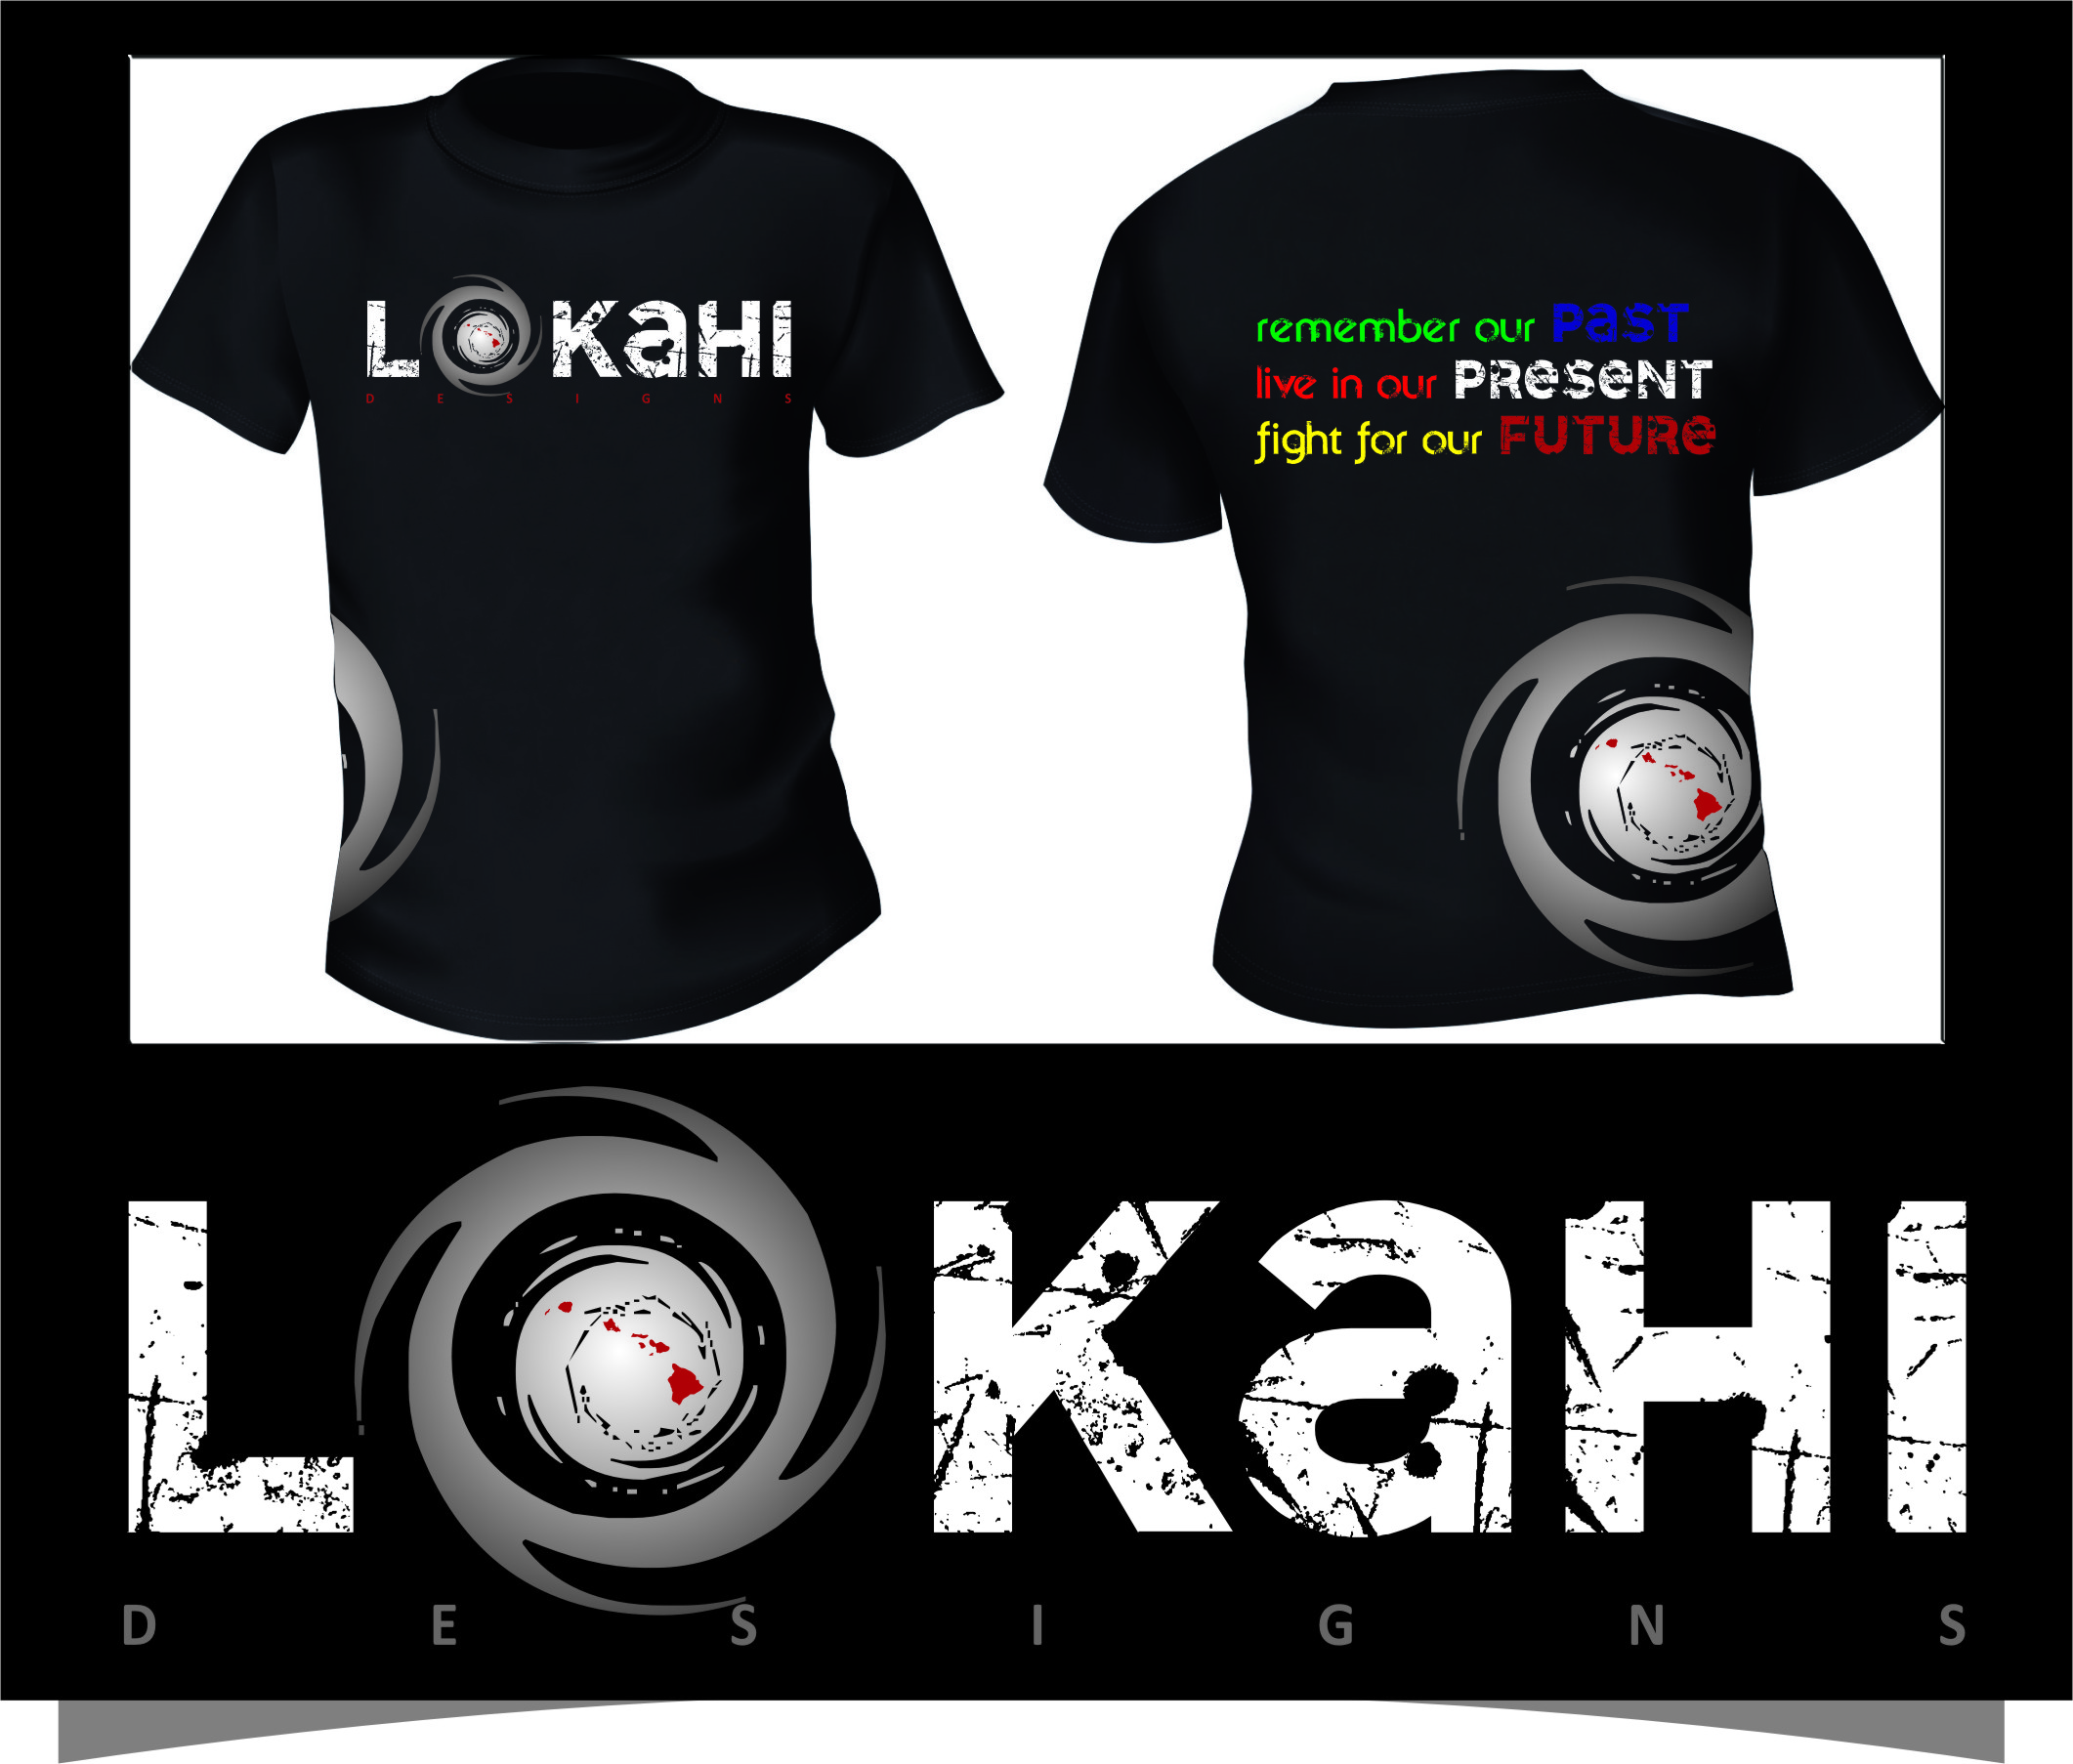 Clothing Design by Ngepet_art - Entry No. 42 in the Clothing Design Contest Creative Clothing Design for LOKAHI designs.